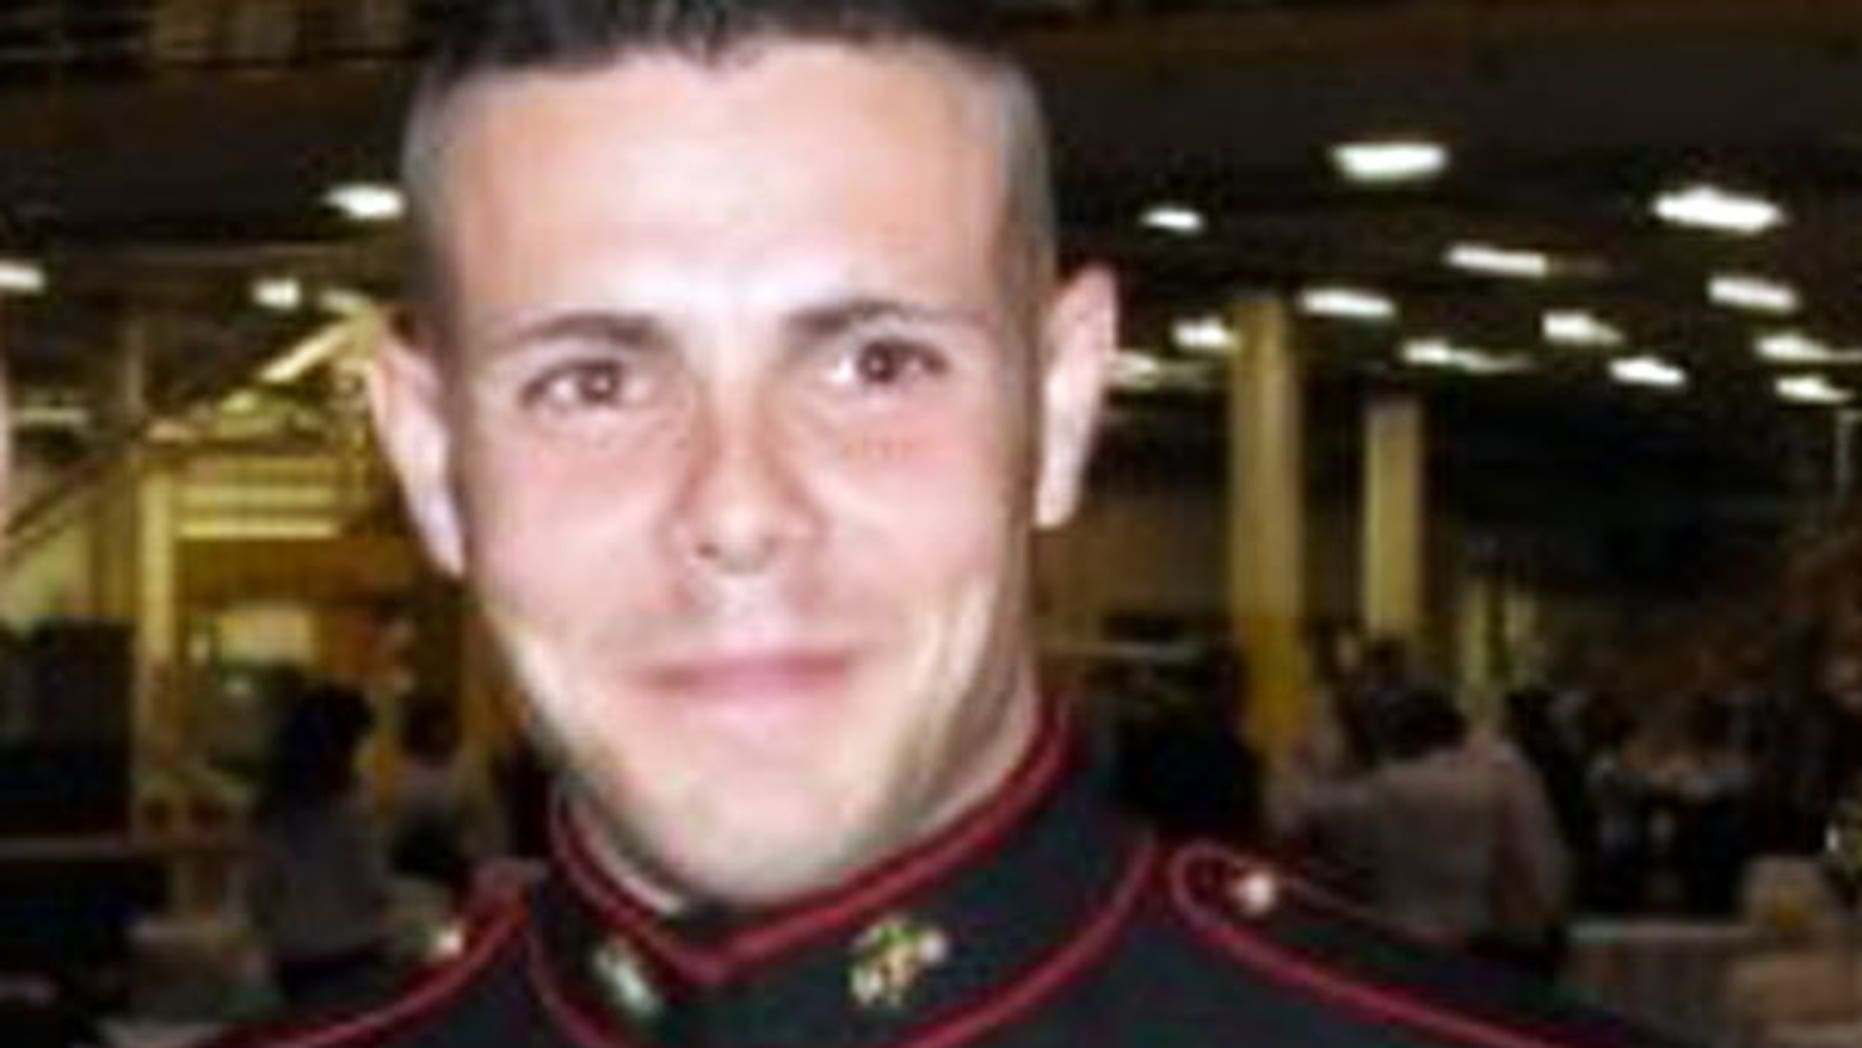 An undated photo of Jesse Bernard Johnston III, 26, wearing a Marine dress uniform with ribbons and medals -- even though records show he never served in the Marine Corps. Despite not having a military background, Johnston was able to join the Army Reserve in February and was given the rank of sergeant.